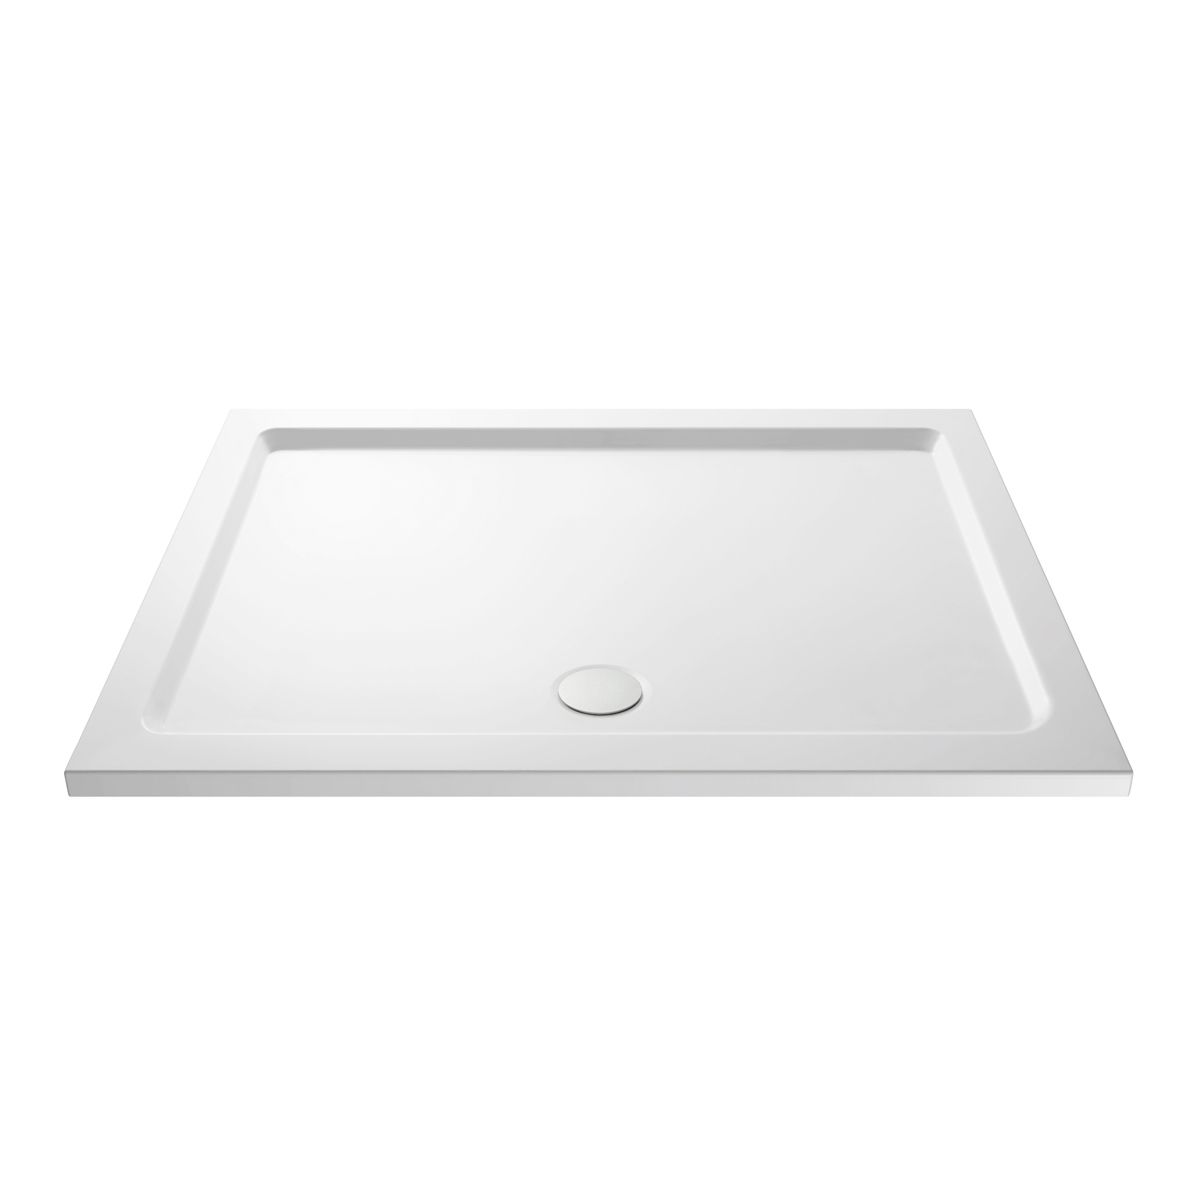 Cassellie Rectangular Shower Tray 1700 x 700mm